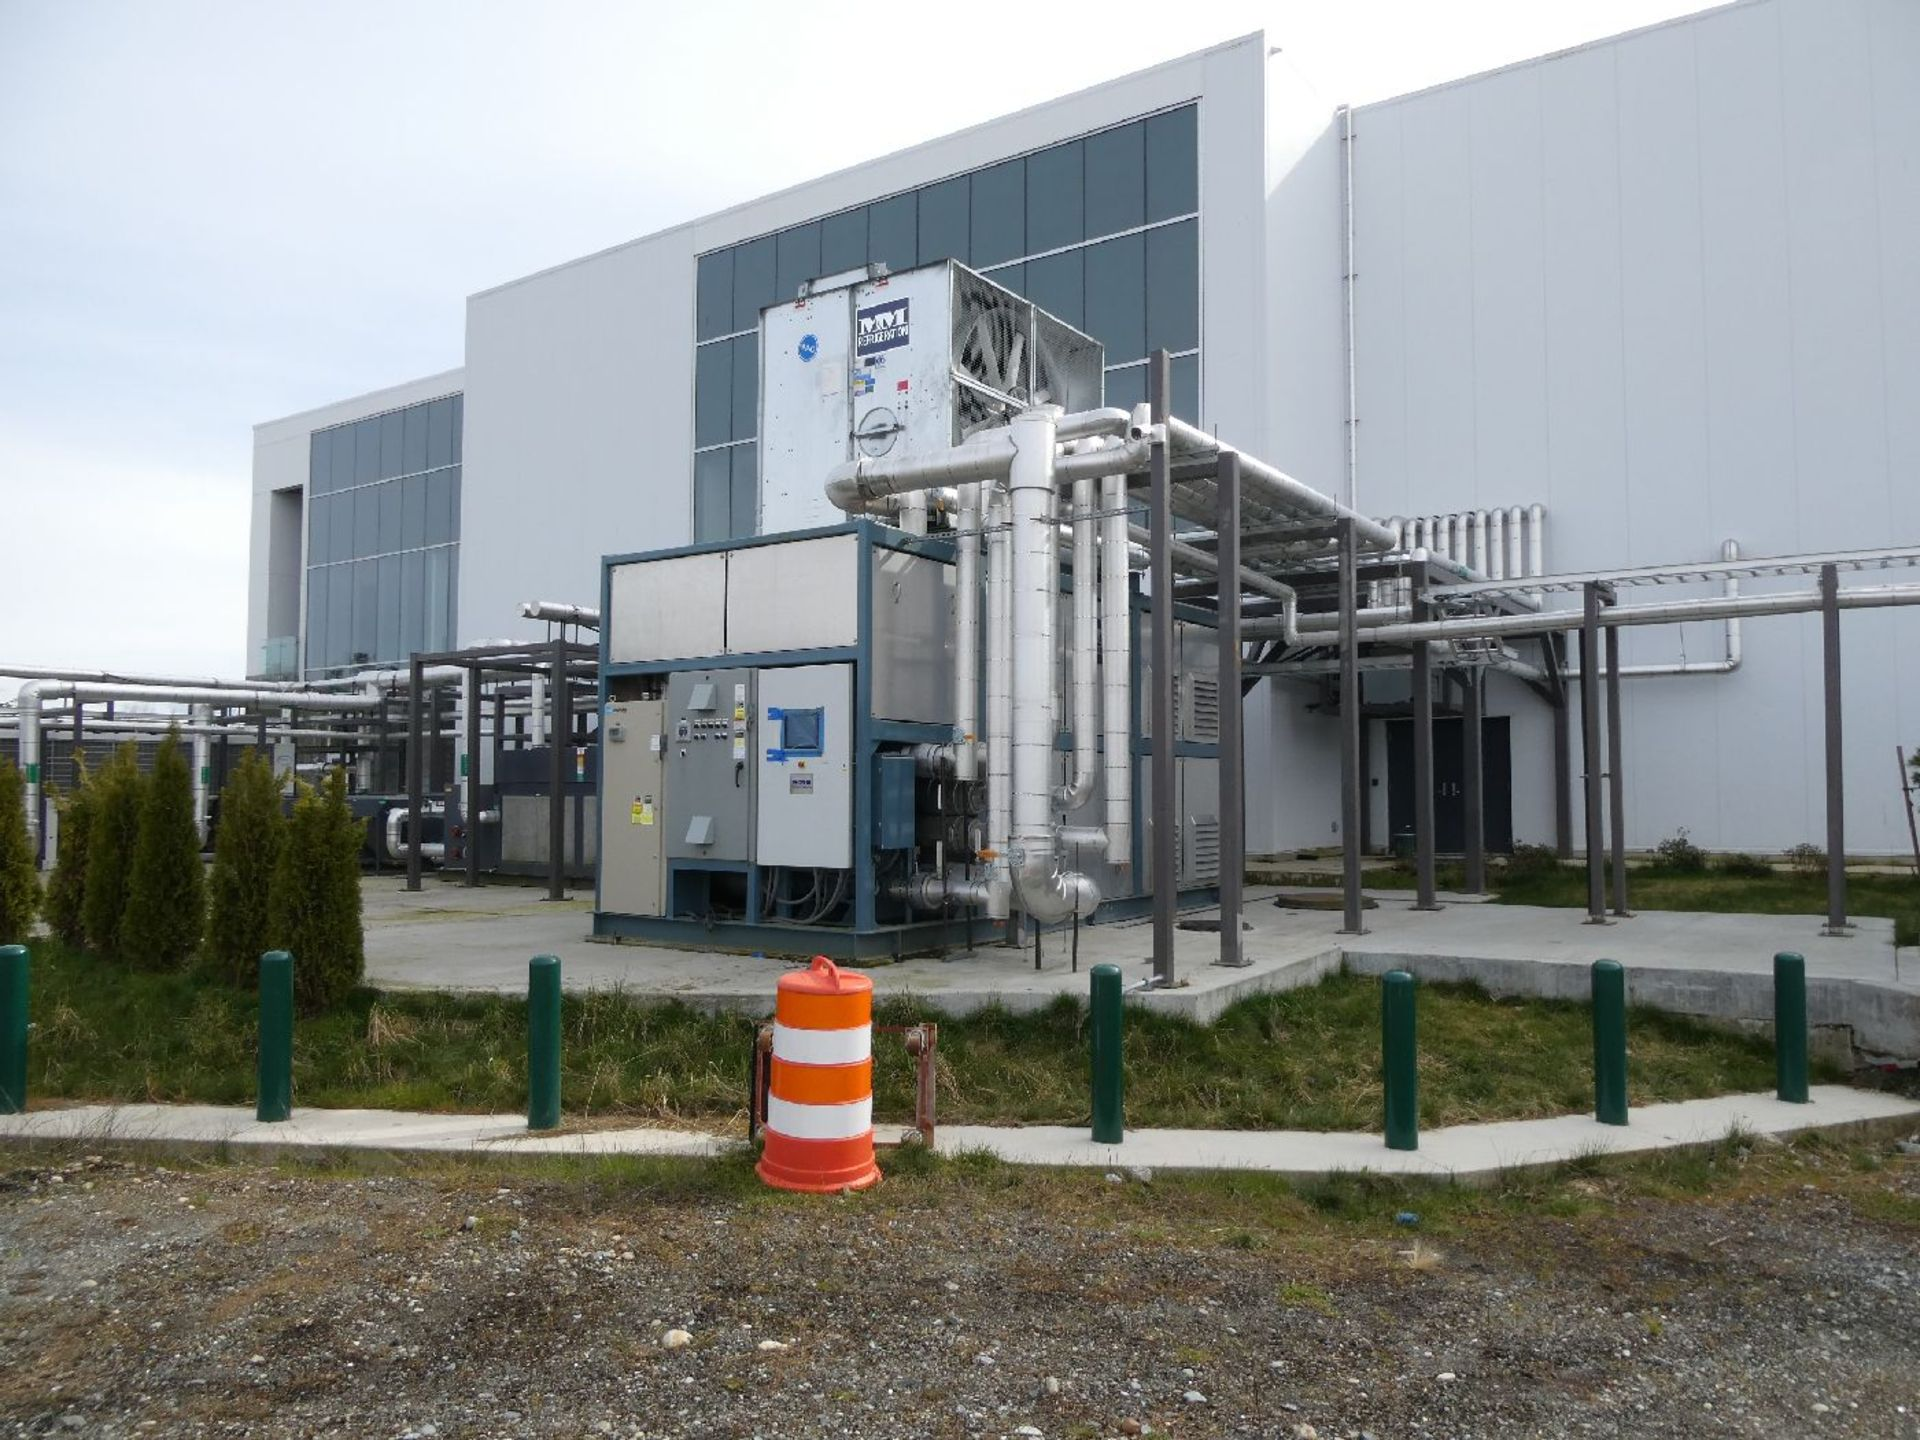 ROTAX Closed Loop Solvent Based Continuous Oil Extraction System - Image 56 of 68